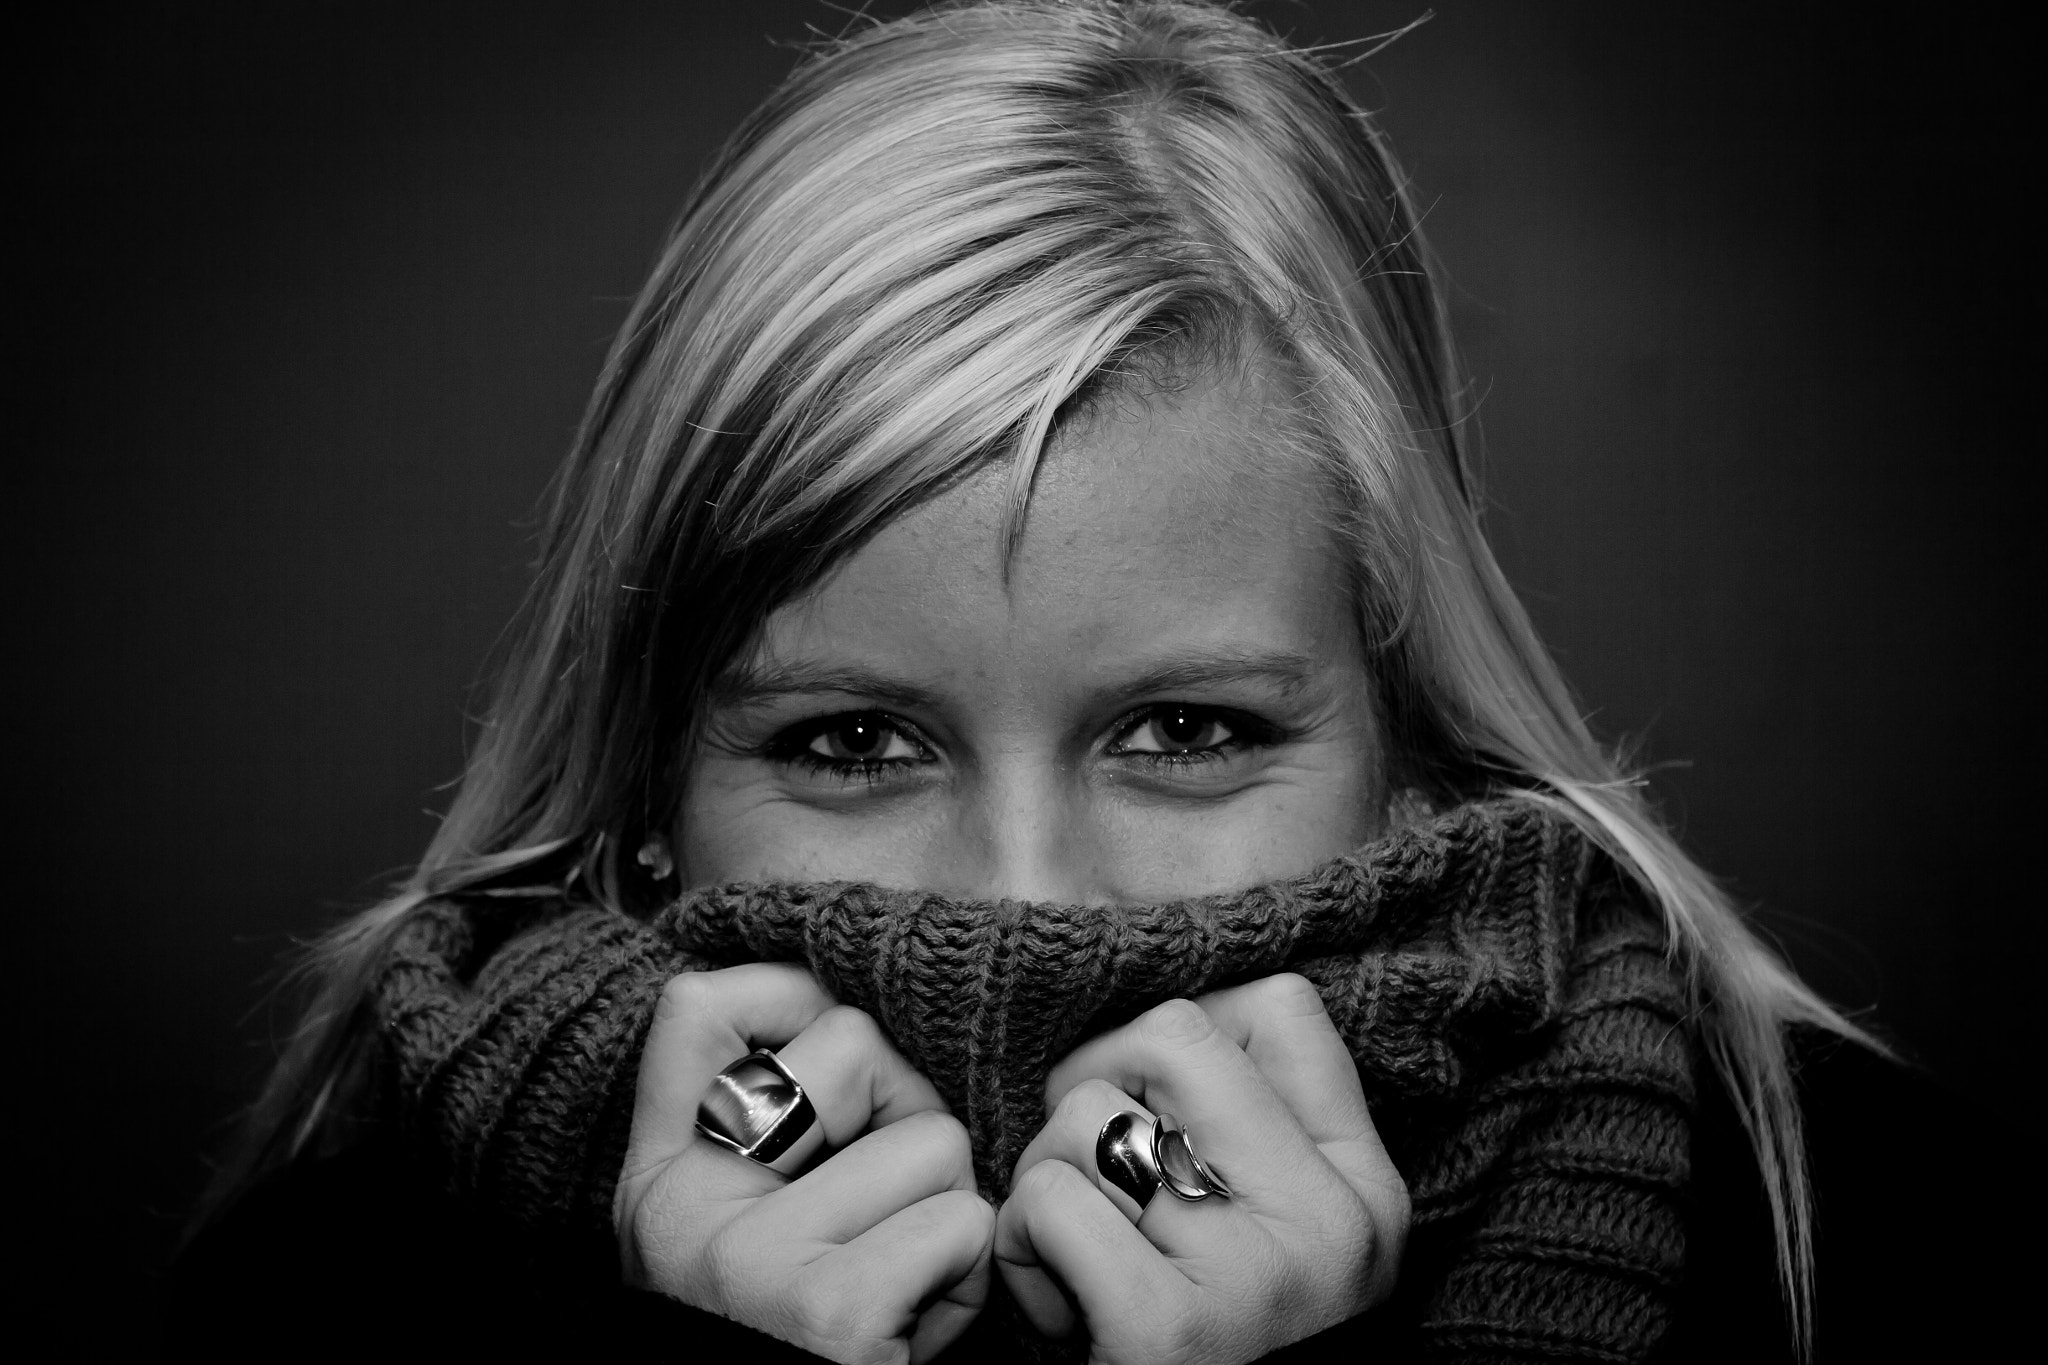 Photograph Liselotte by Denis Caeyers on 500px